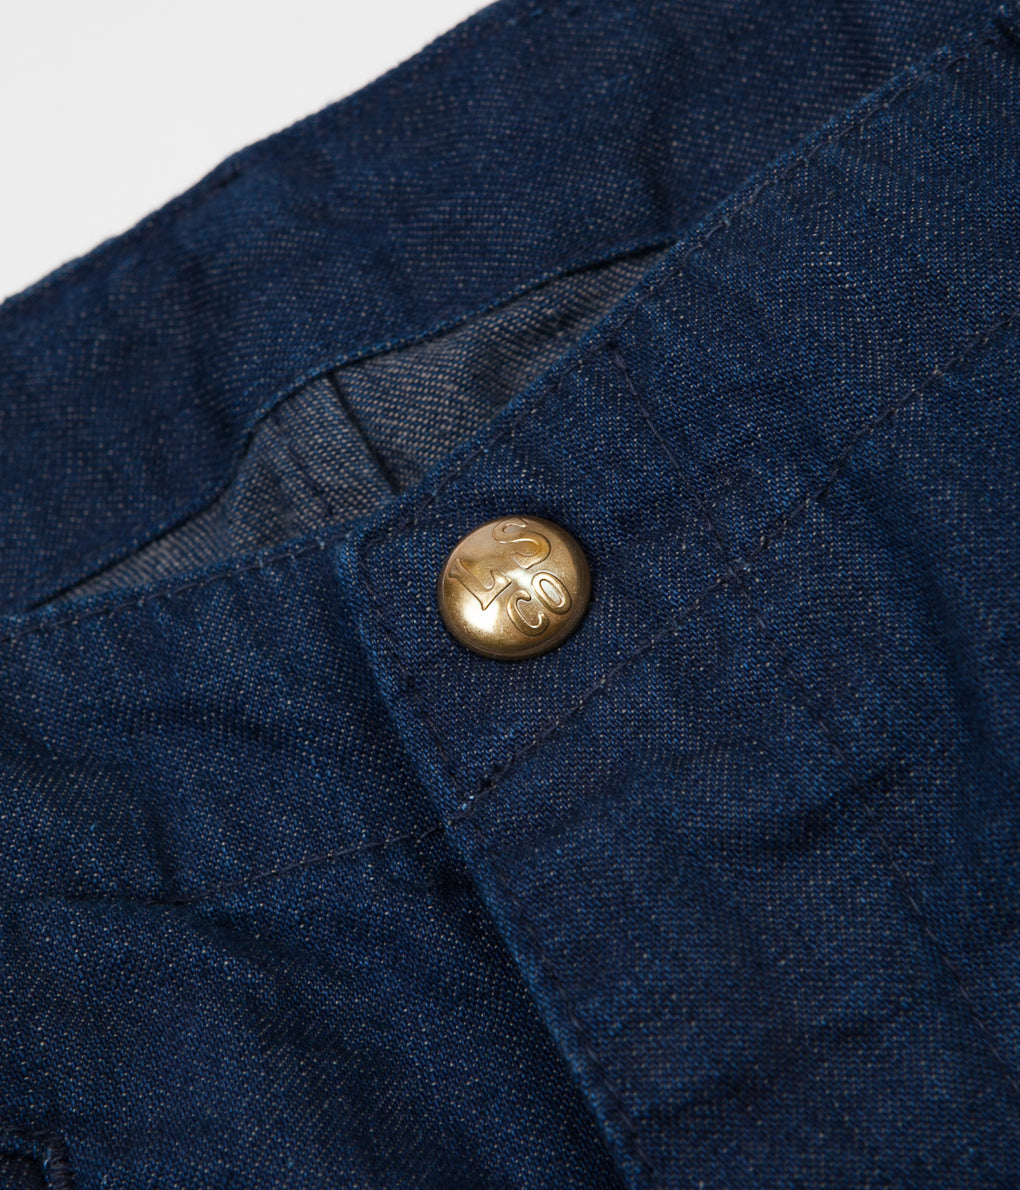 Levi's® Vintage Clothing 1920's Balloons Jeans - Ink Rinse